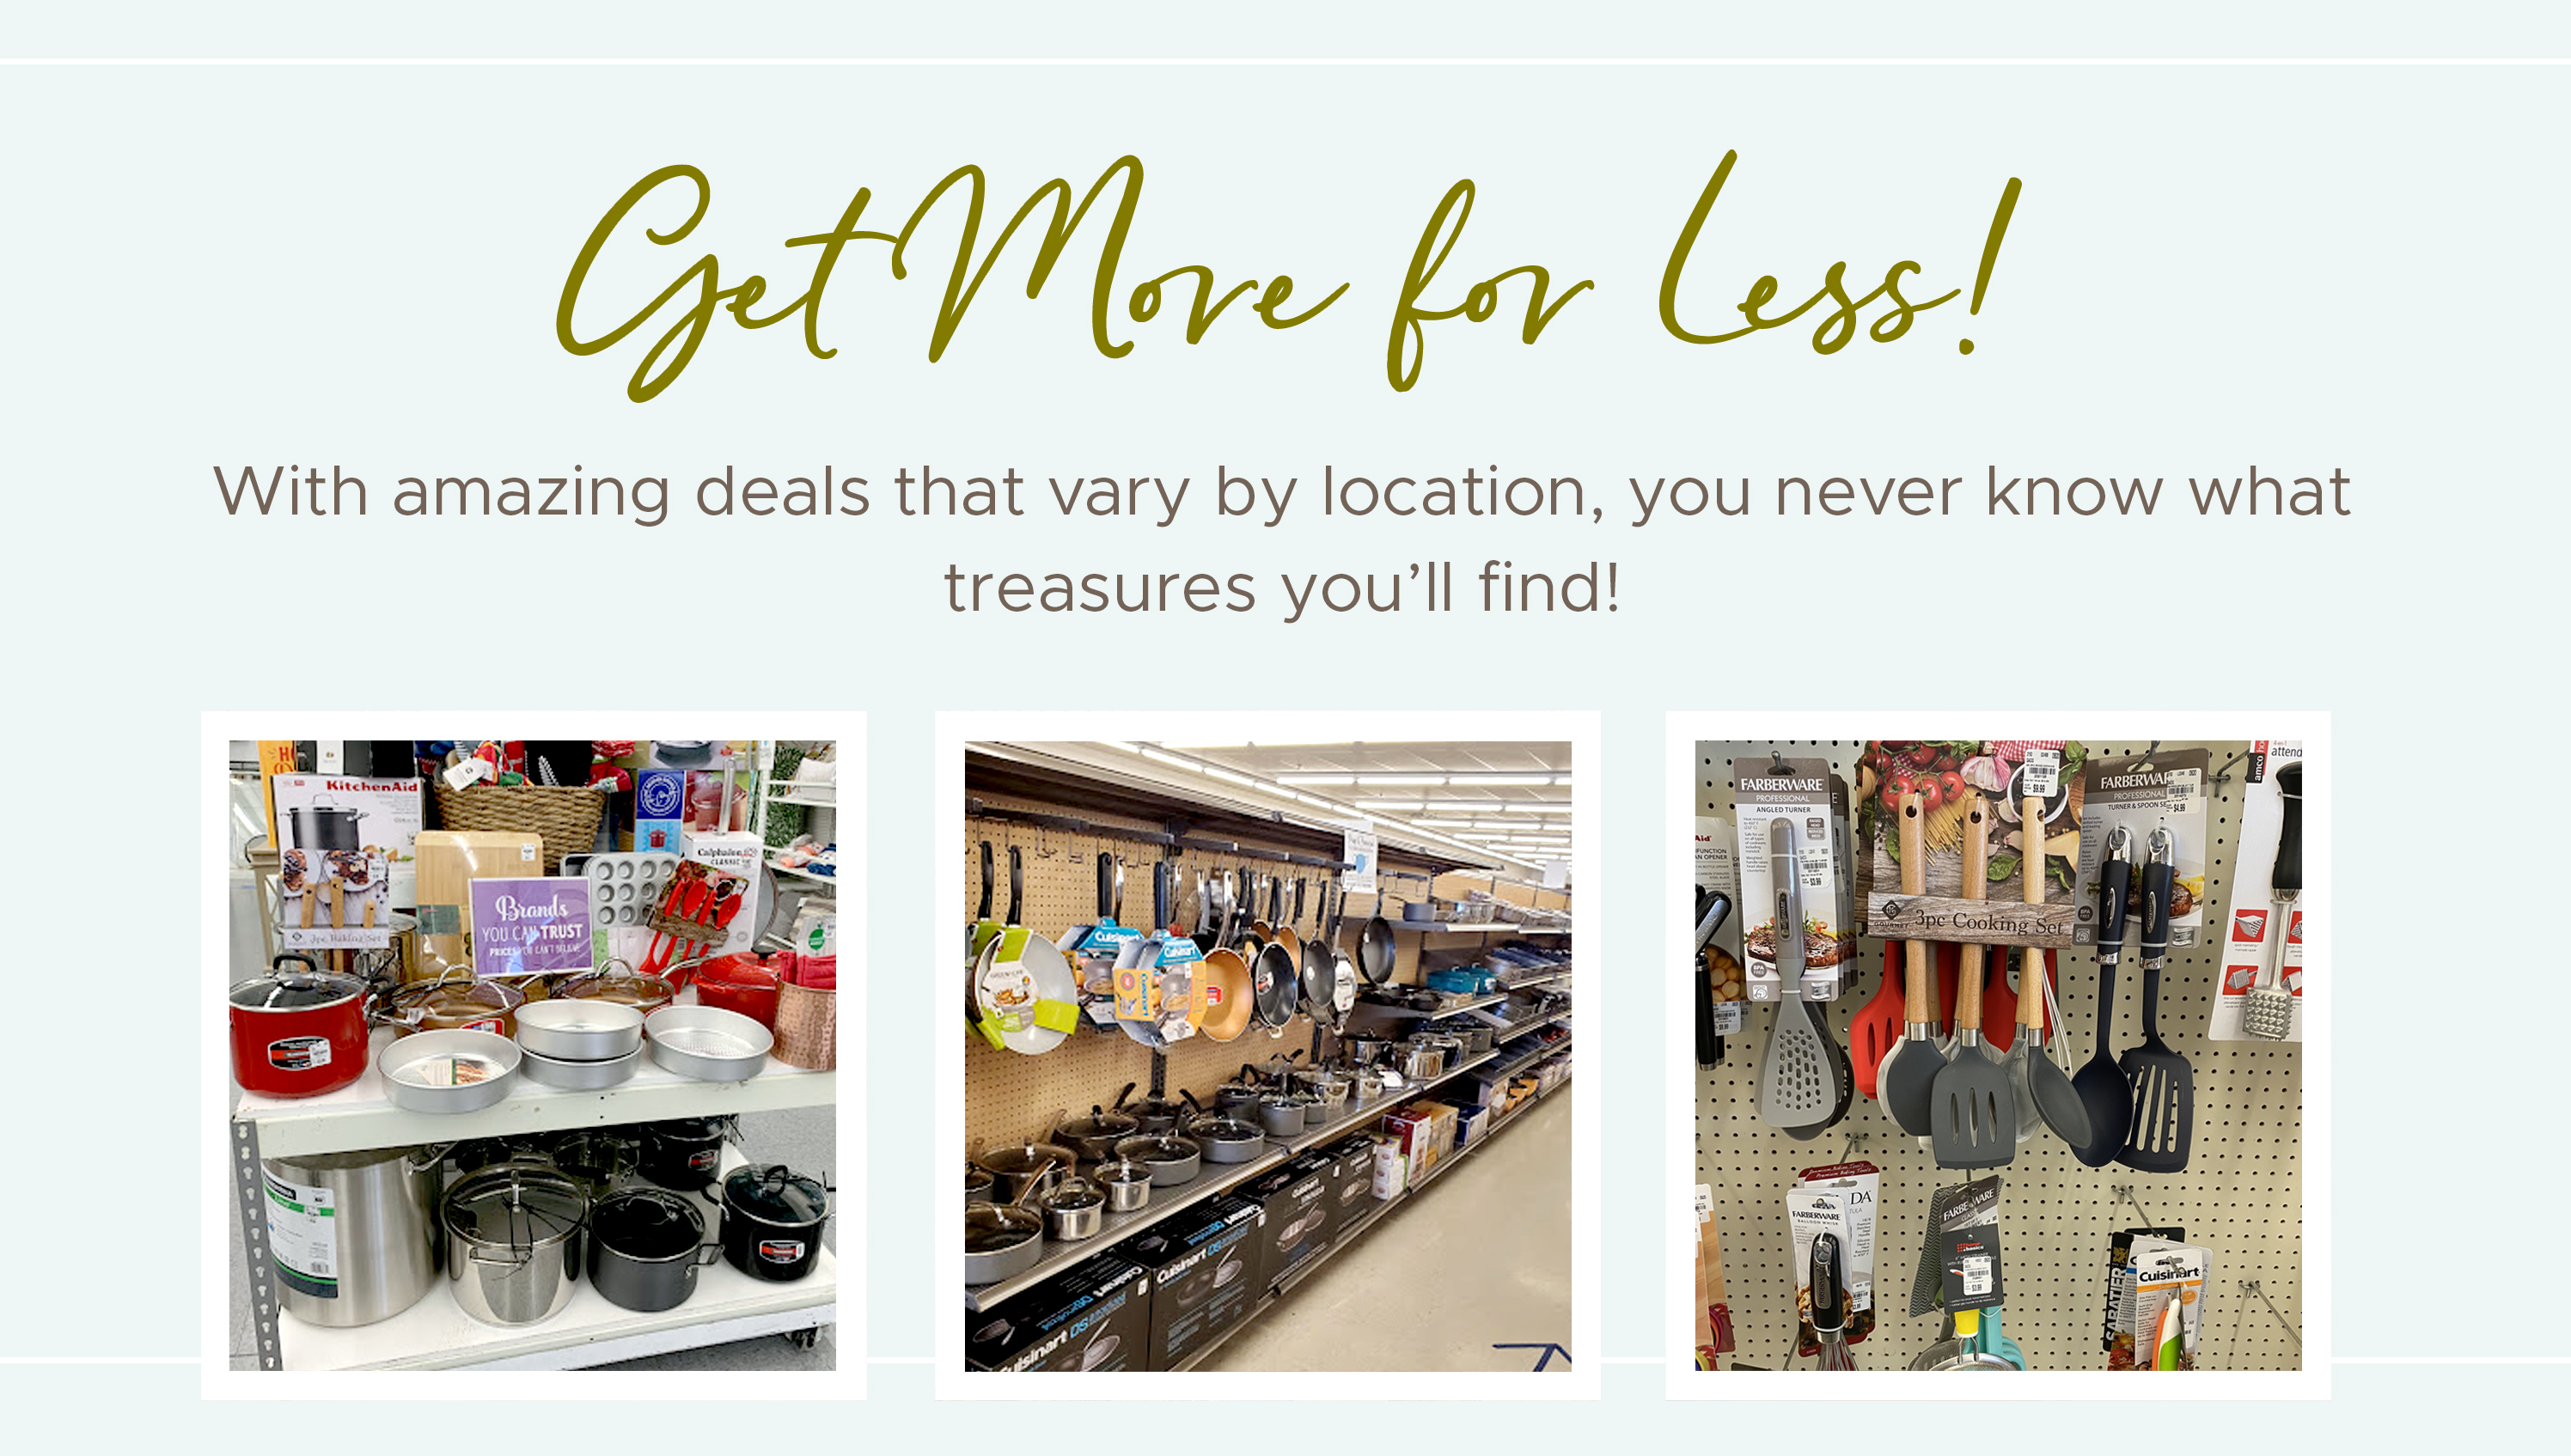 Get More For Less - With amazing deals that vary by location, you never know what treasures you'll find!